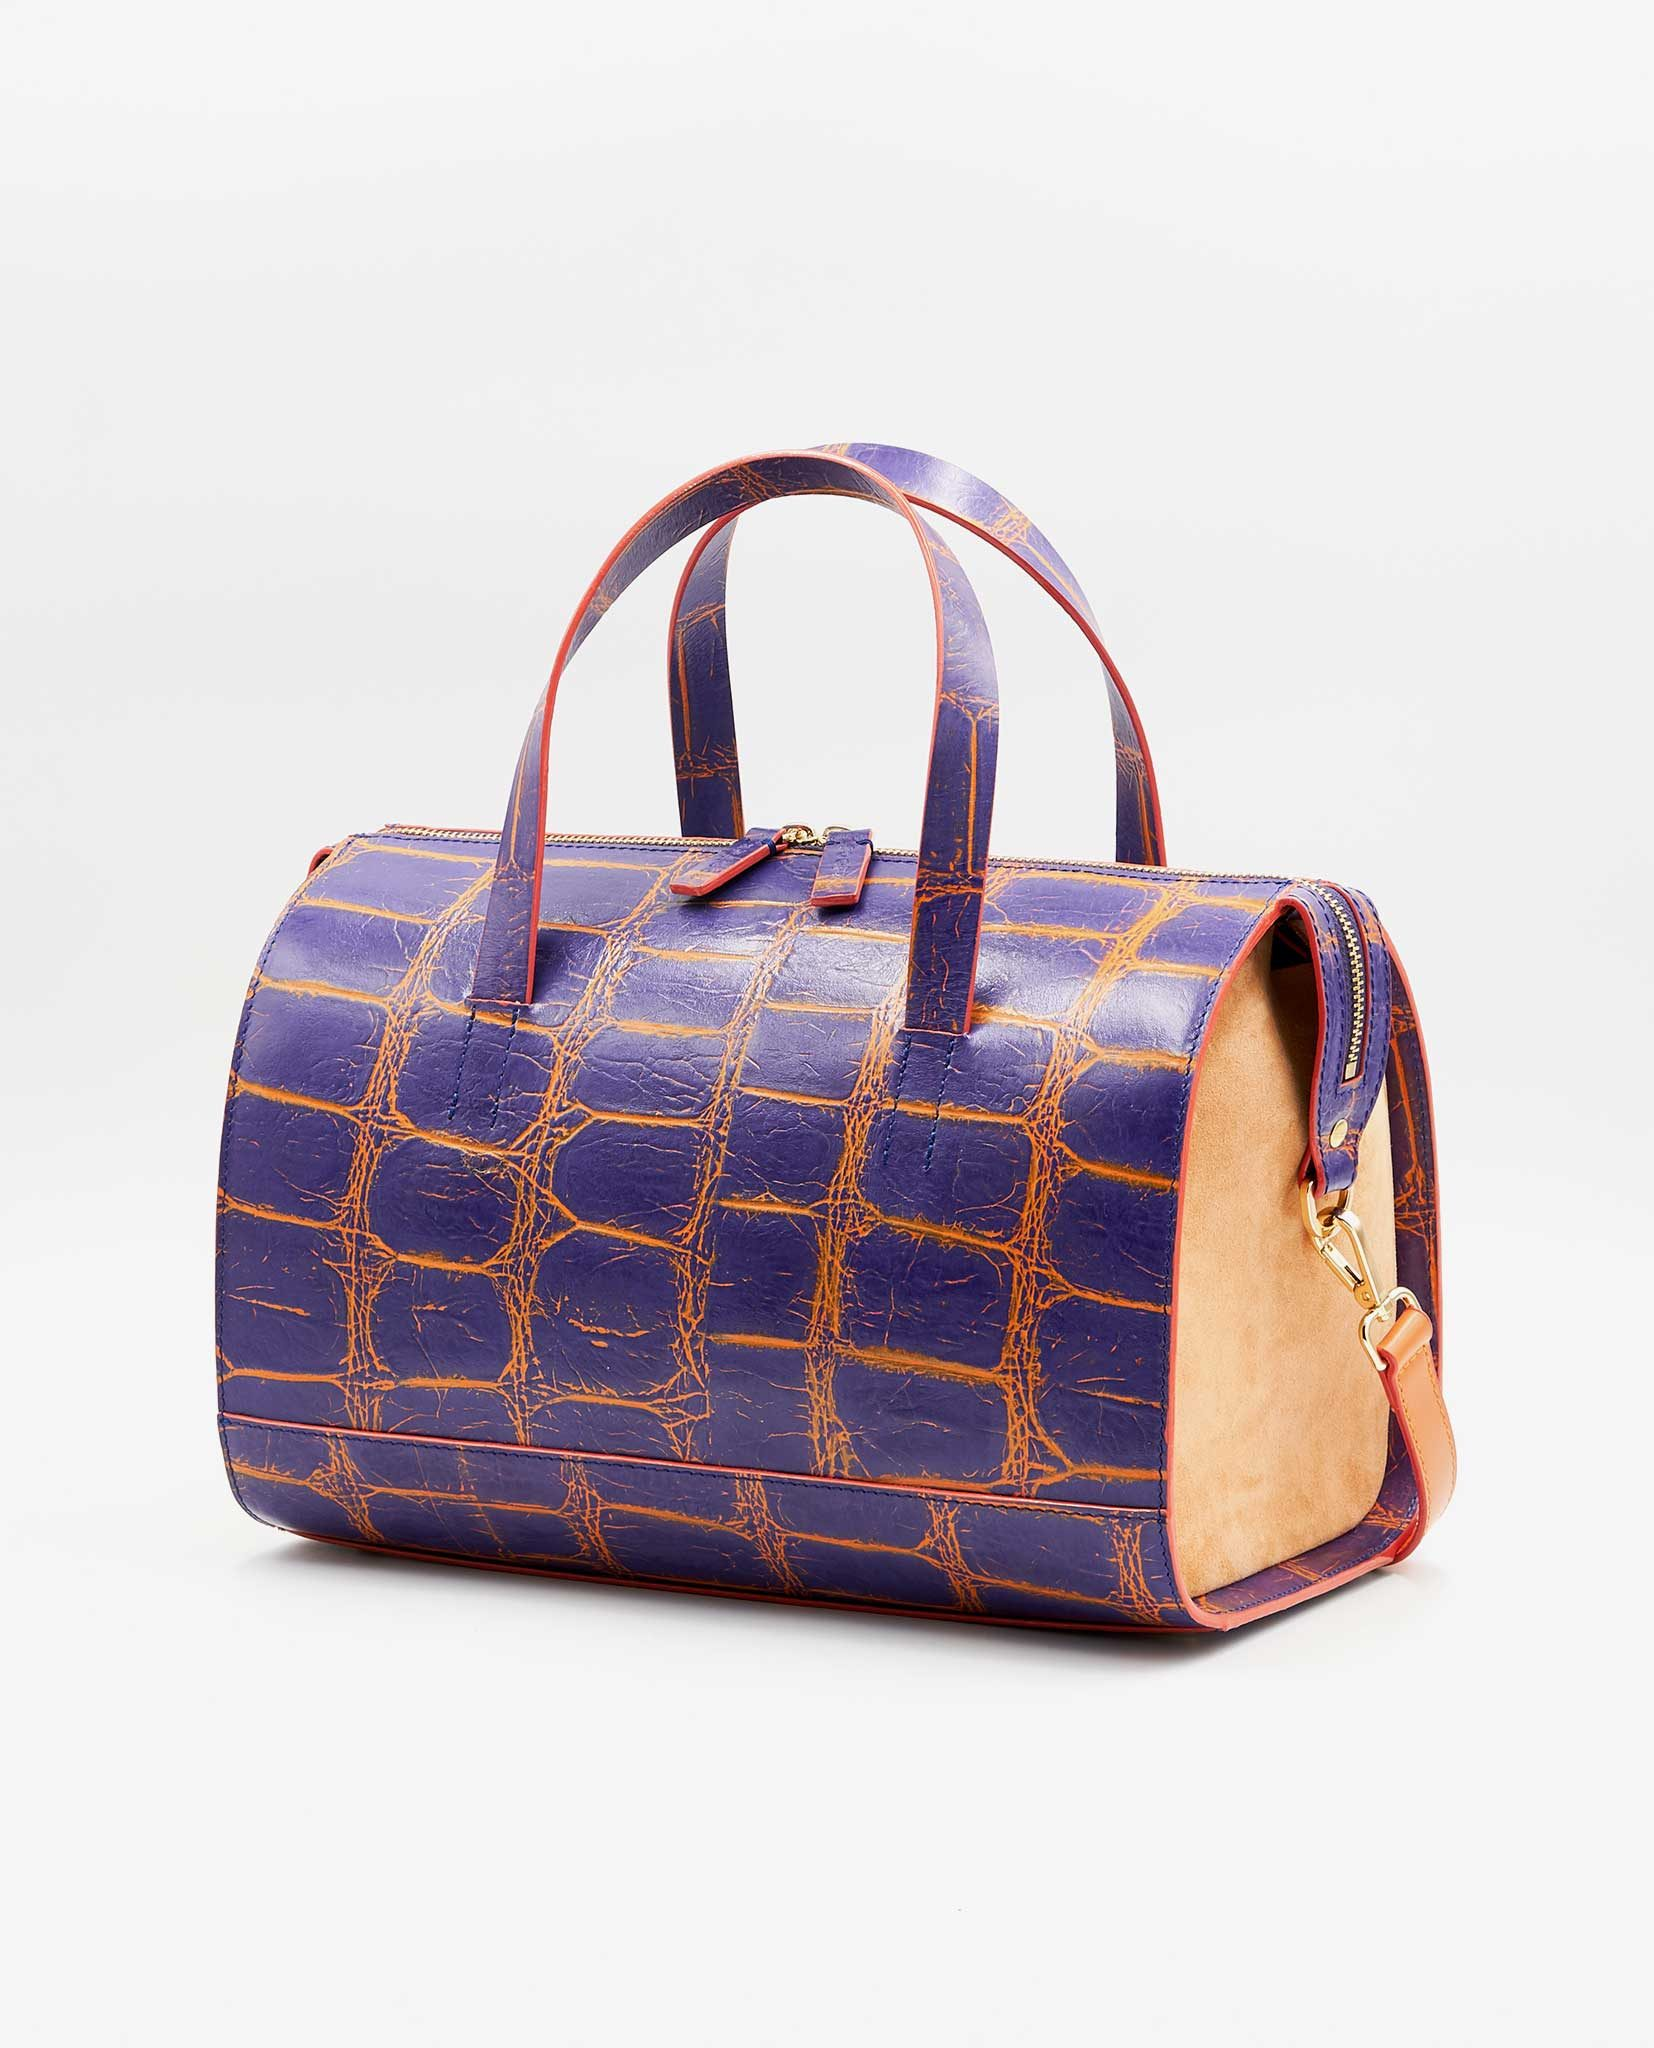 SOOFRE Berlin unique Bowler Bag croco purple orange / apricot